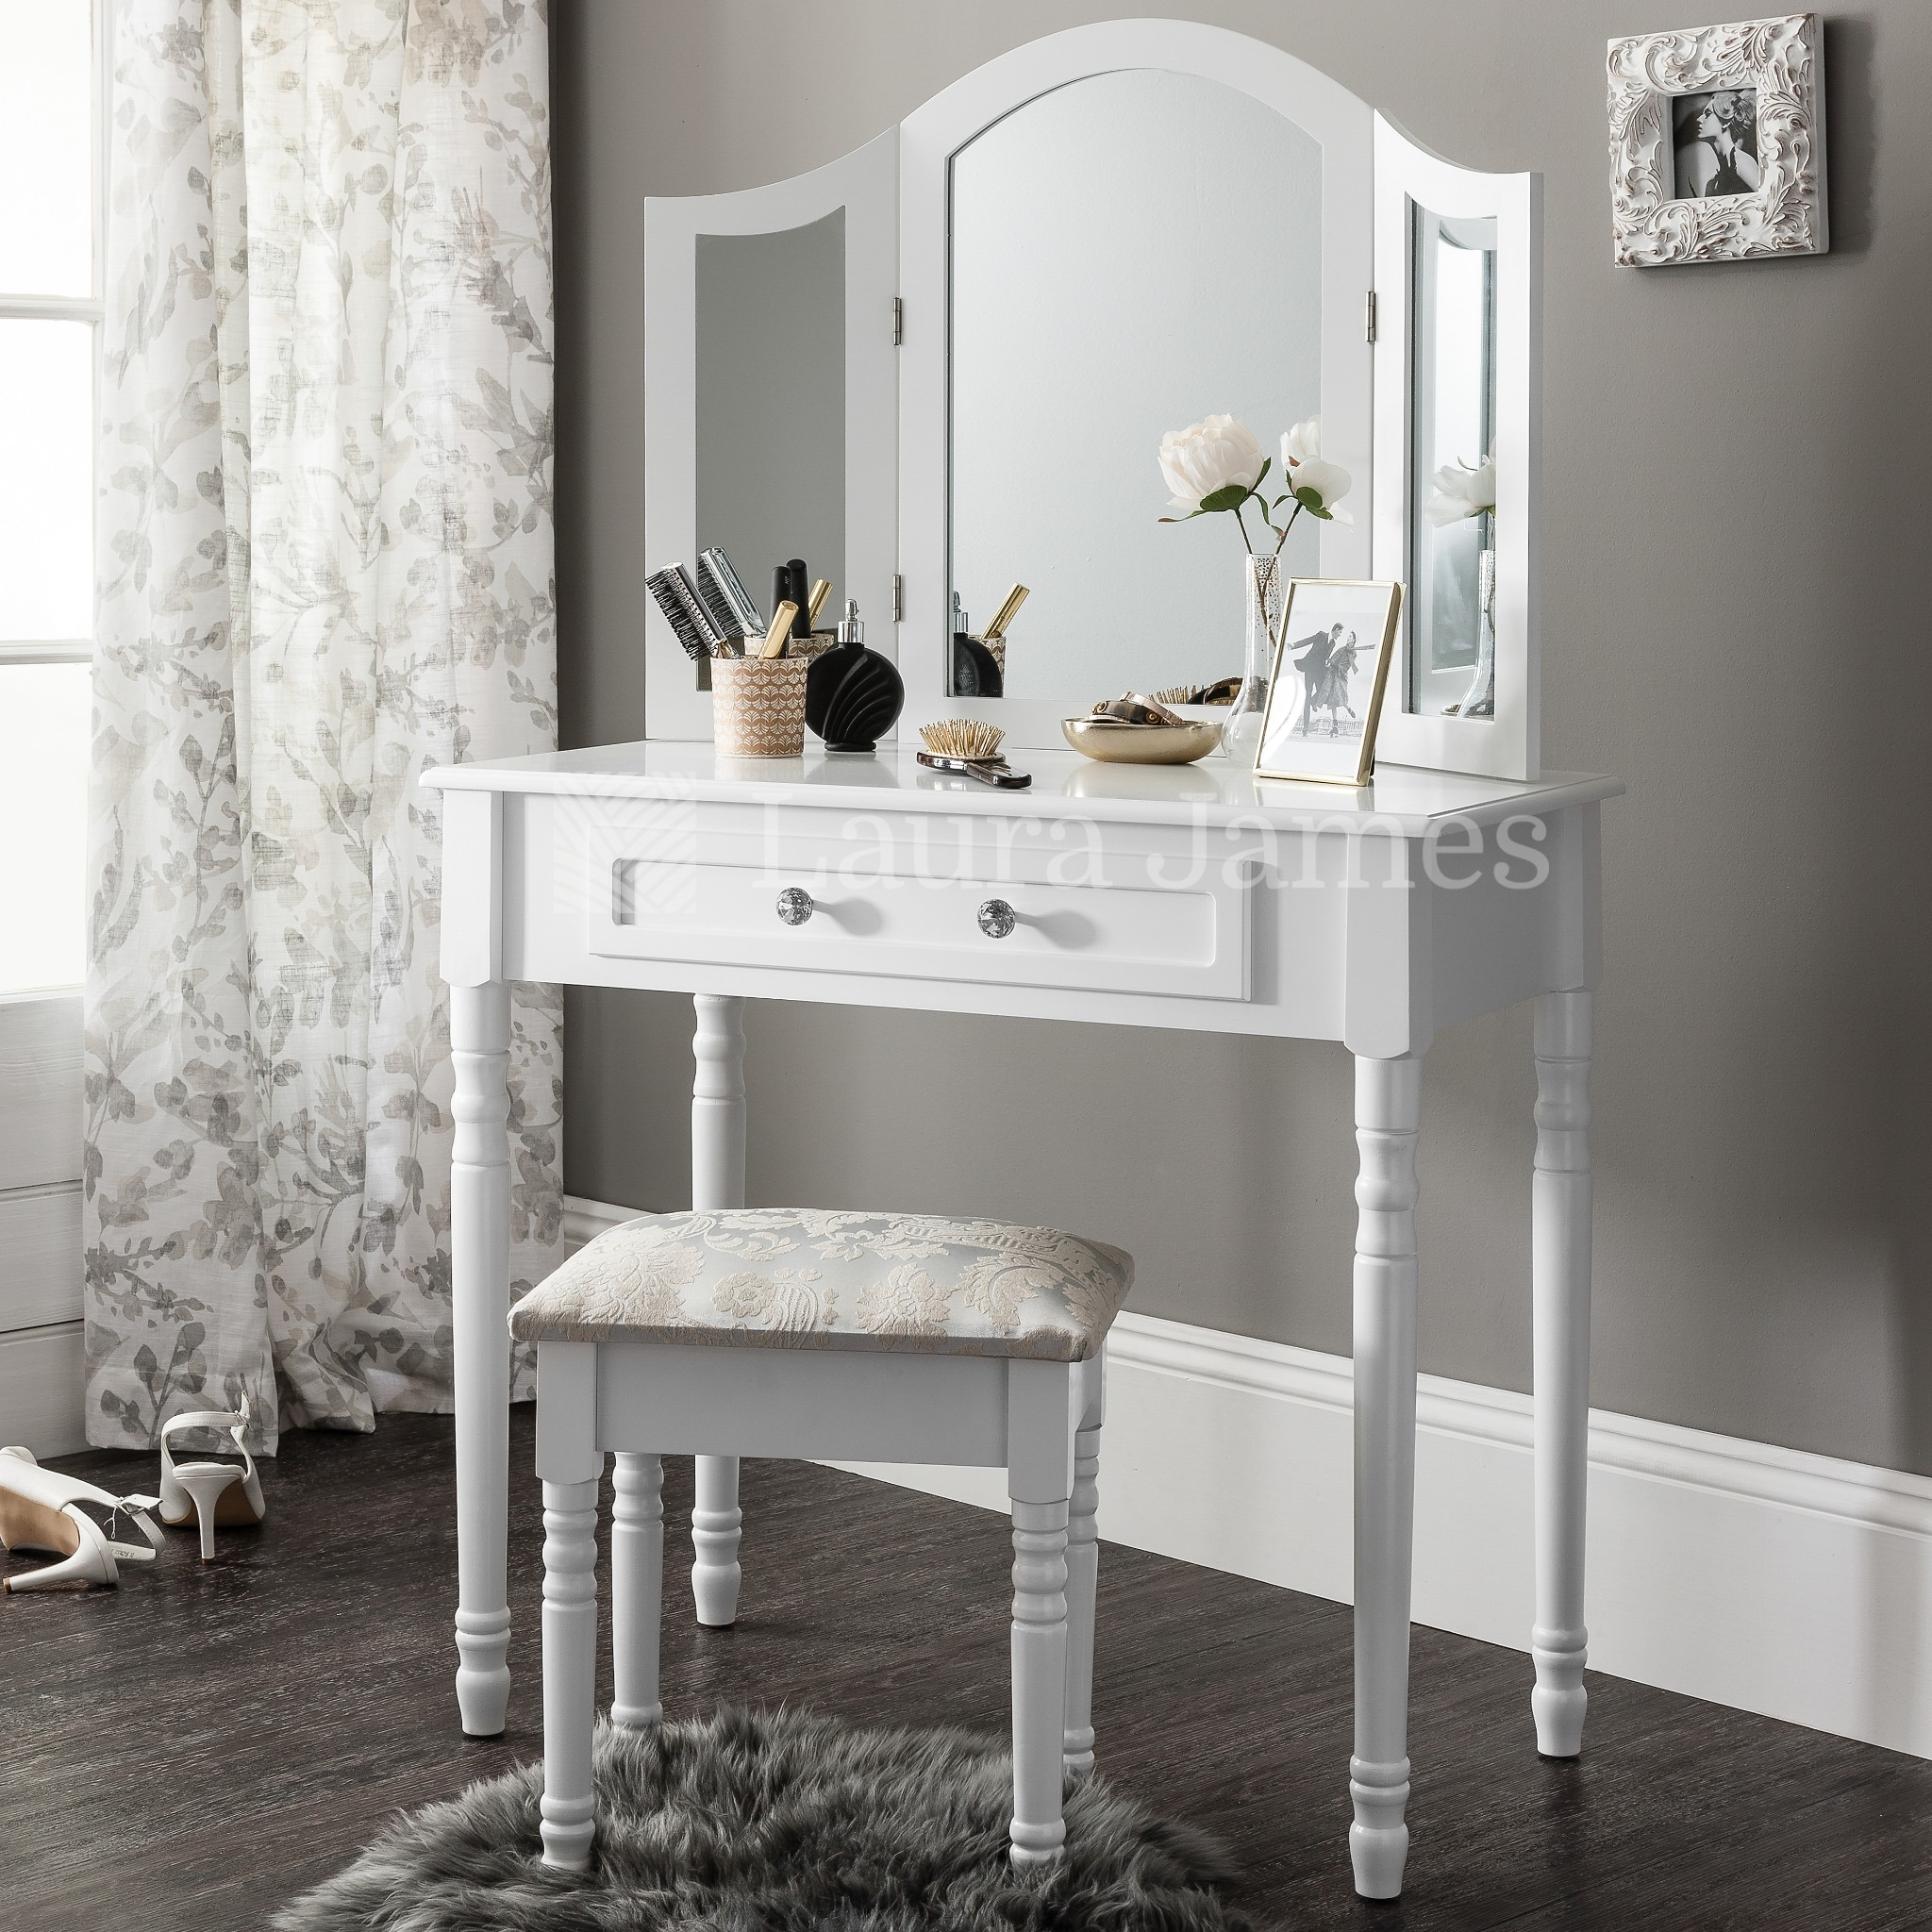 Dressing Tables Ebay Within Free Standing Dressing Table Mirrors (Image 7 of 15)